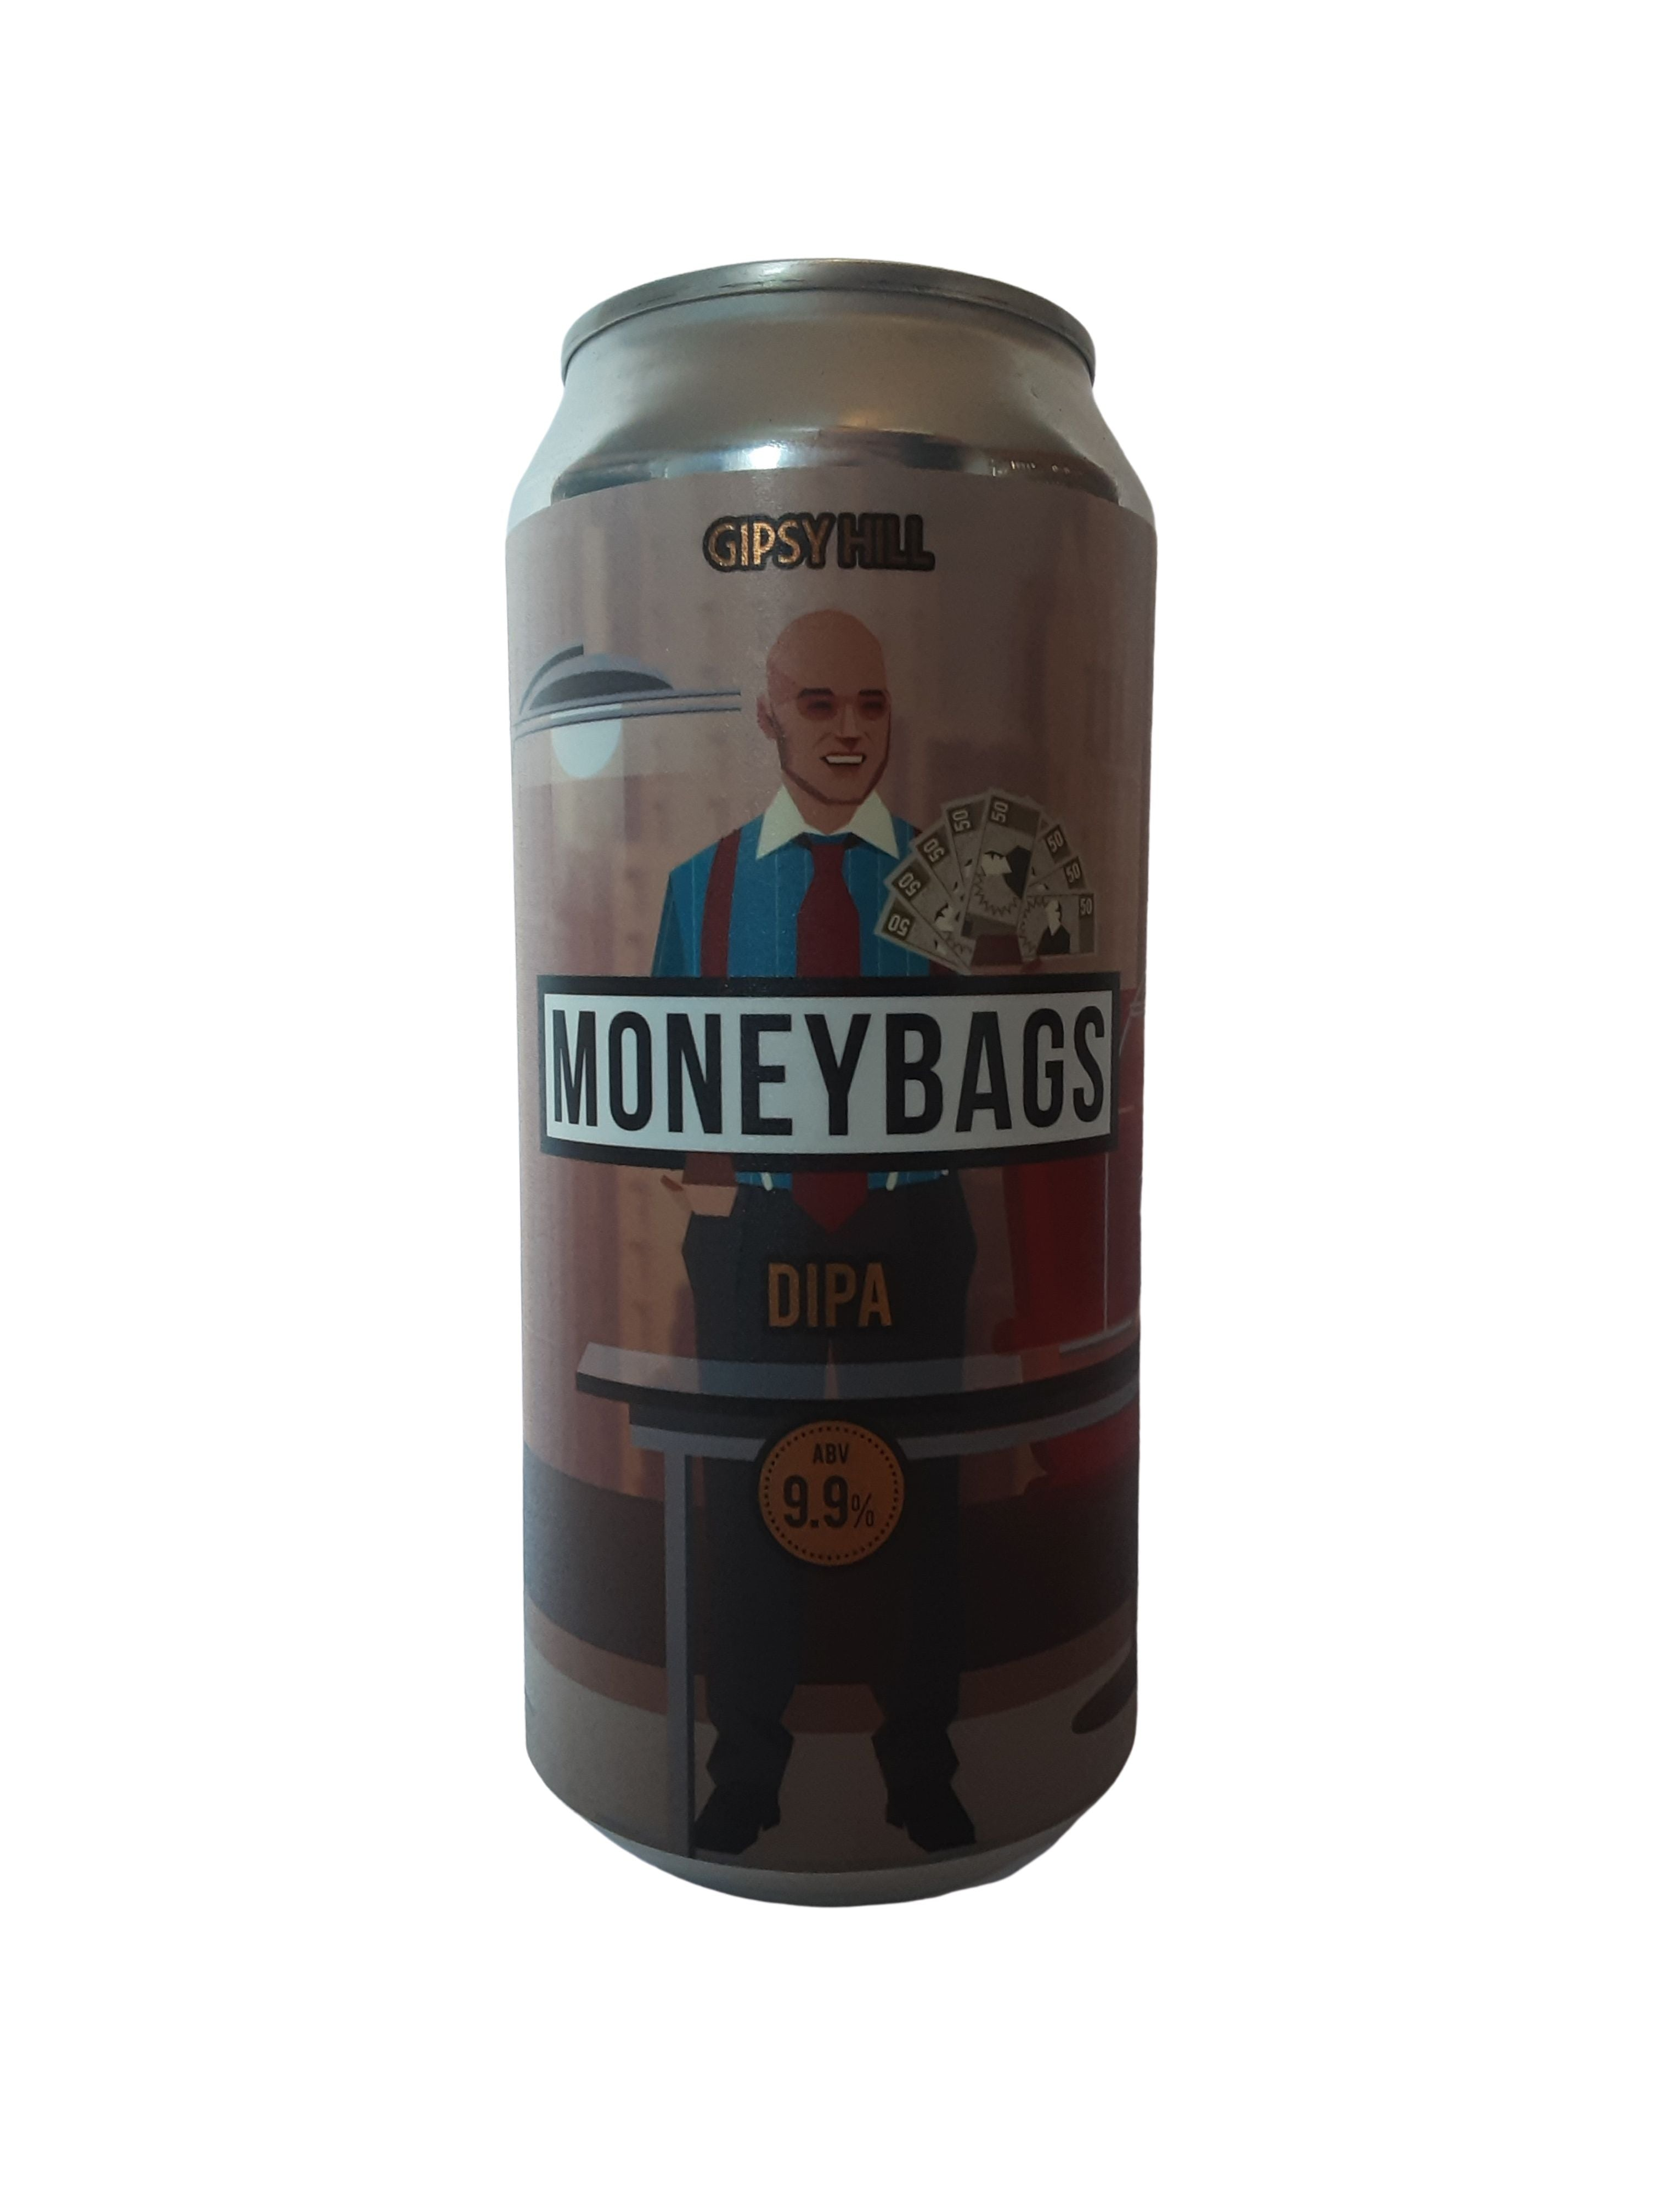 Gipsy Hill - Moneybags - DIPA - 9.9% (4.11 UT)